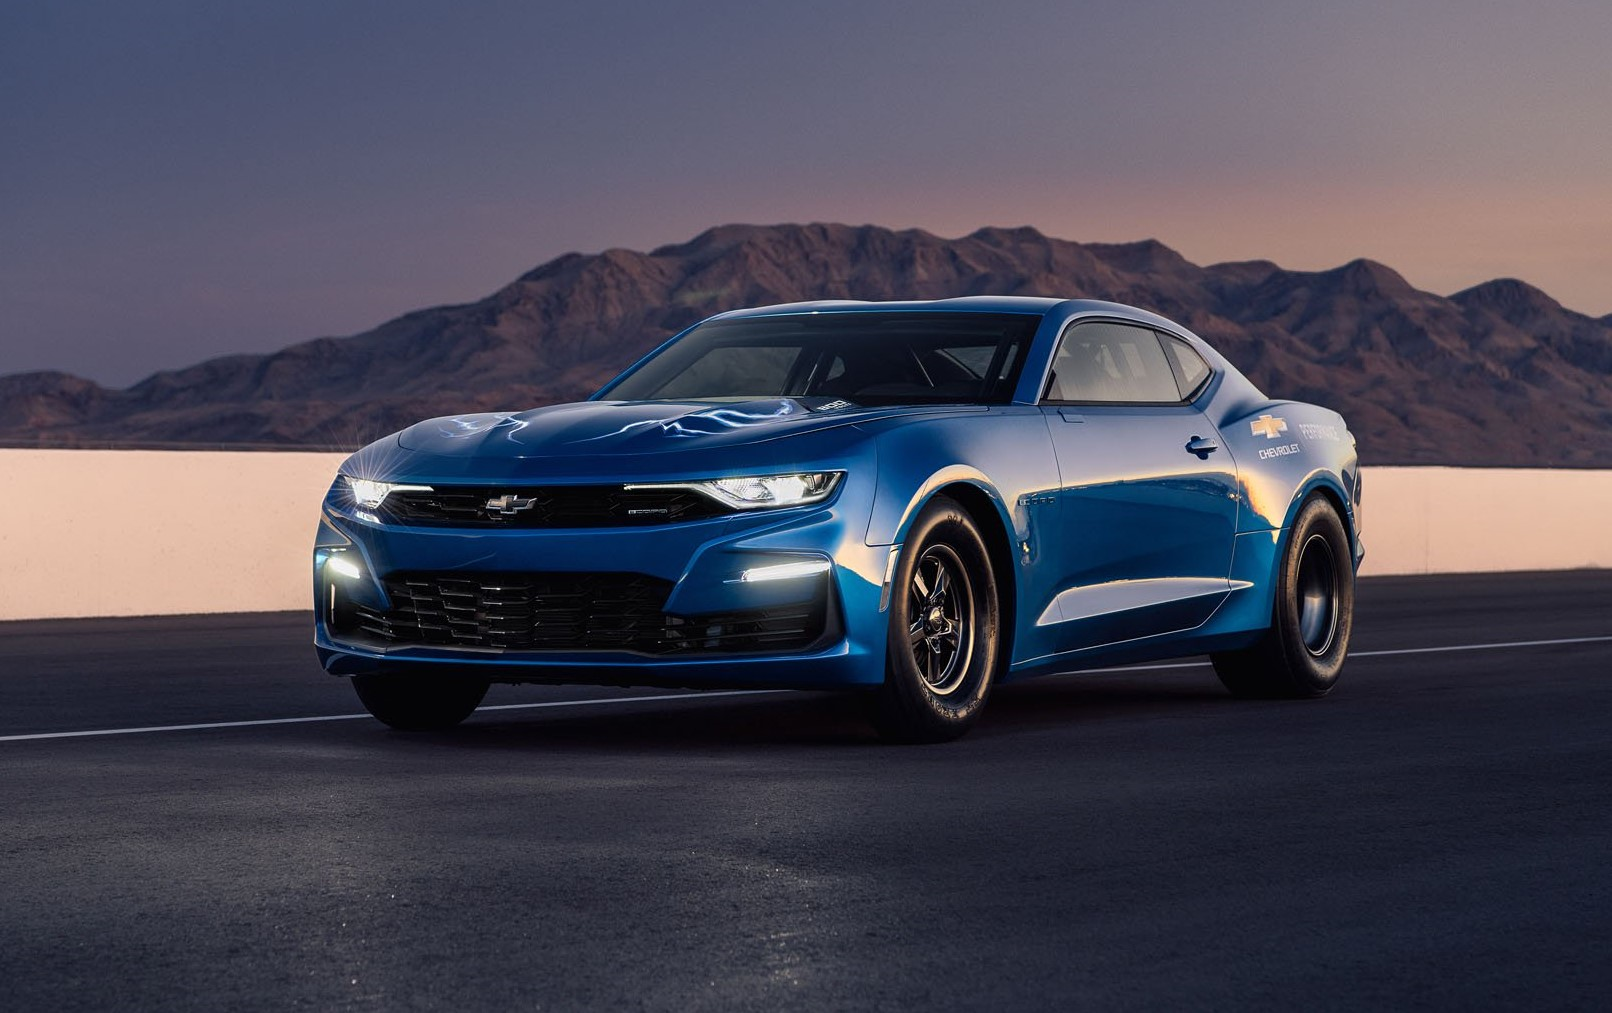 Chevrolet unveils electric-powered eCOPO Camaro race car concept at SEMA Show